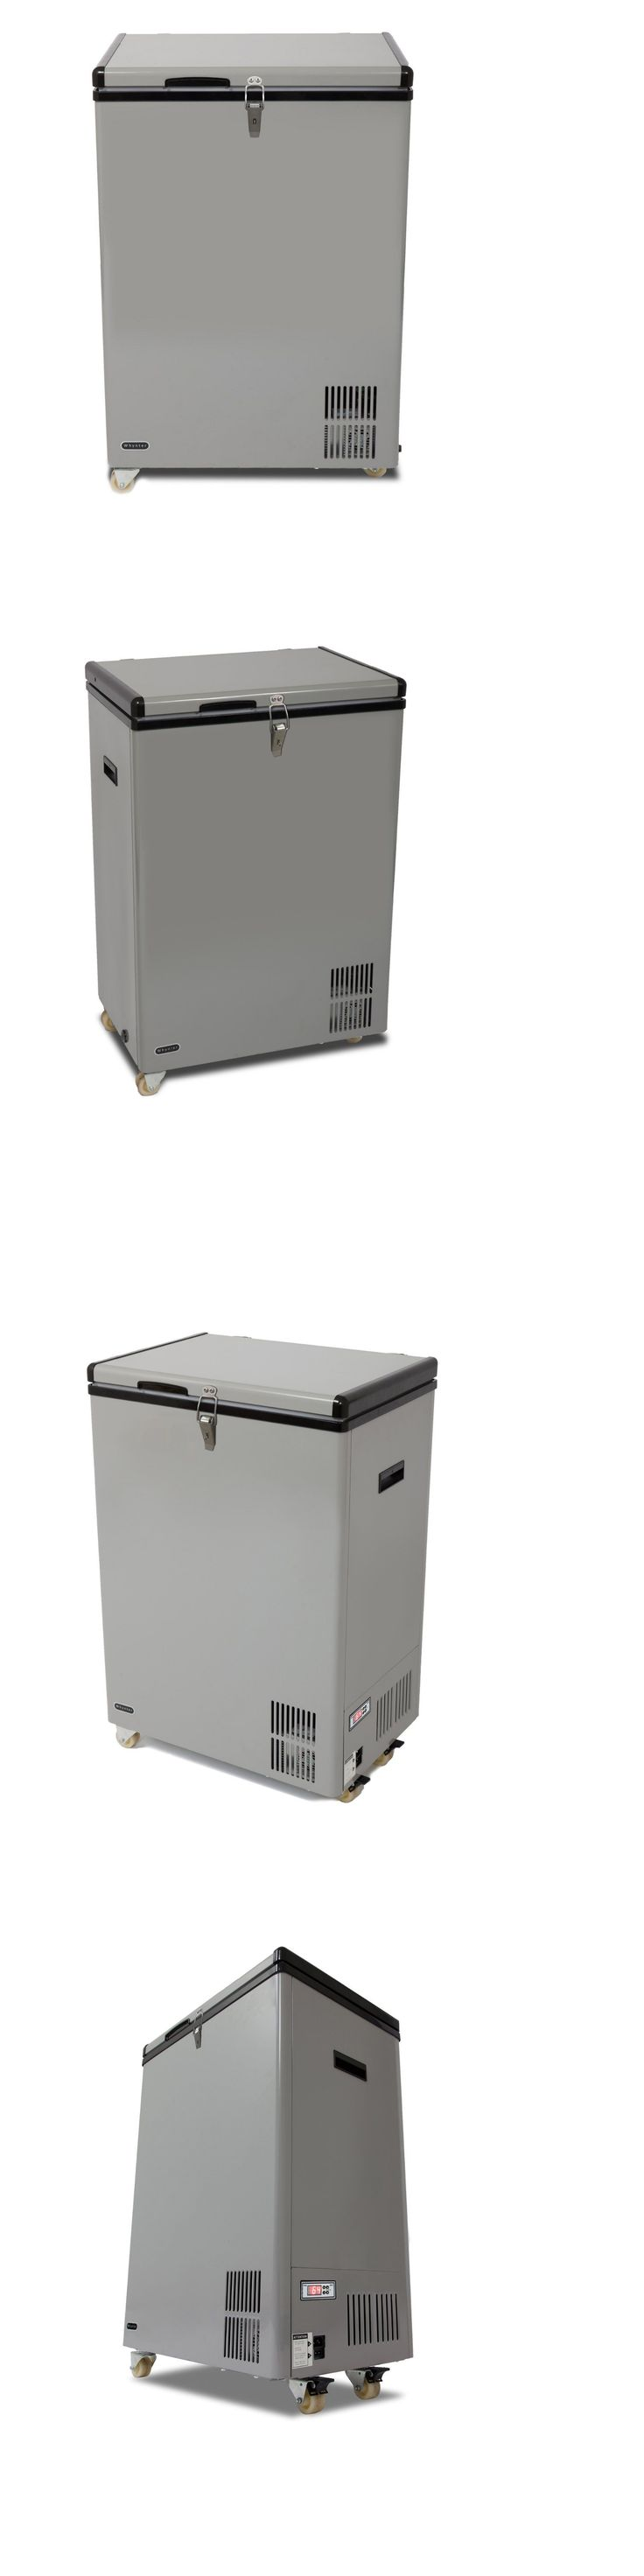 Upright and Chest Freezers 71260: Whynter Fm-951Gw 95 Qt Portable Wheeled Fridge And Freezer , Gray -> BUY IT NOW ONLY: $499.99 on eBay!